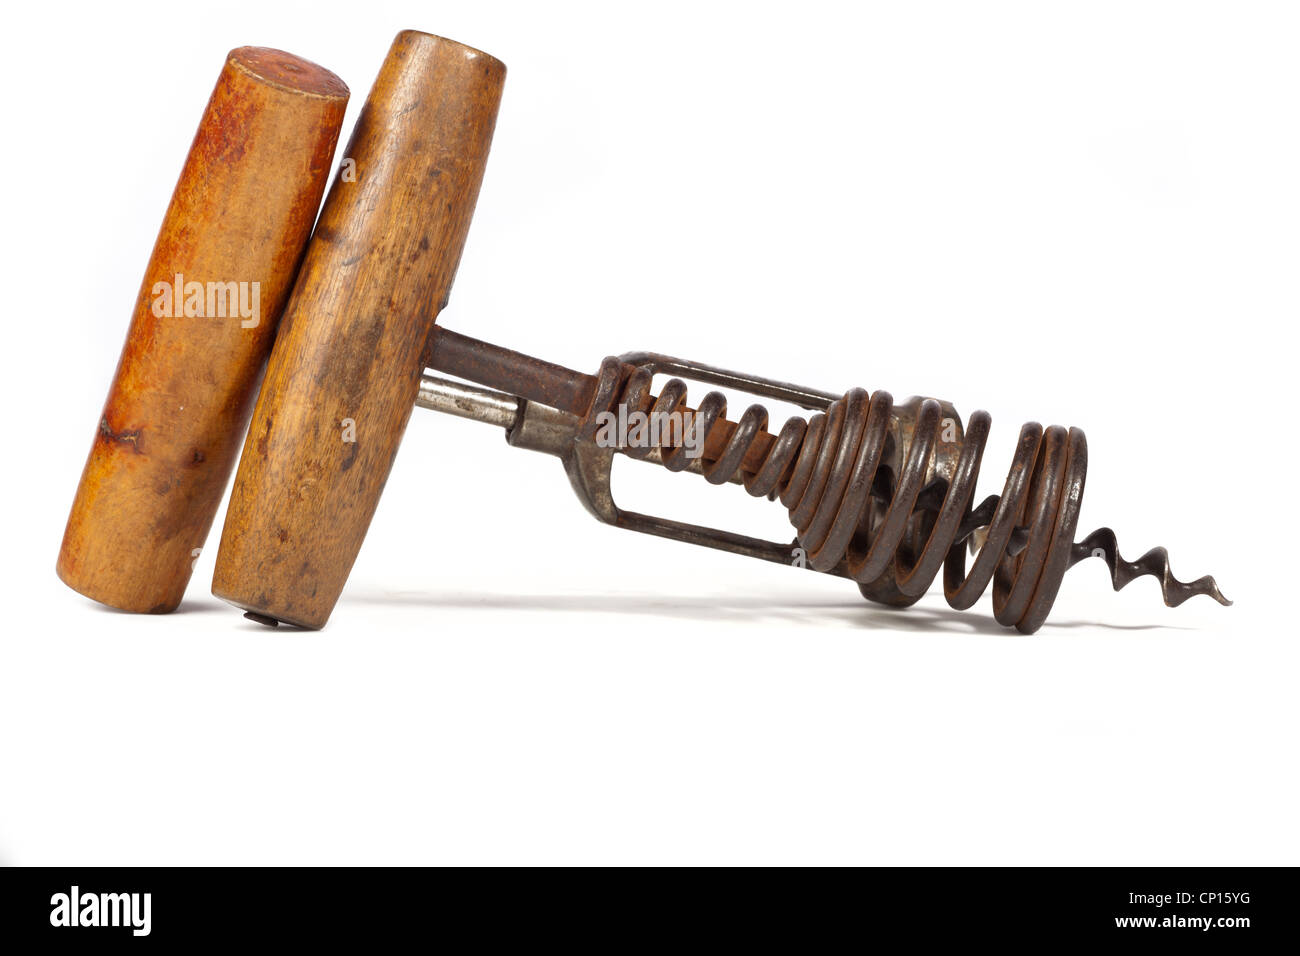 Two old corkscrews with wooden grip on white background - Stock Image